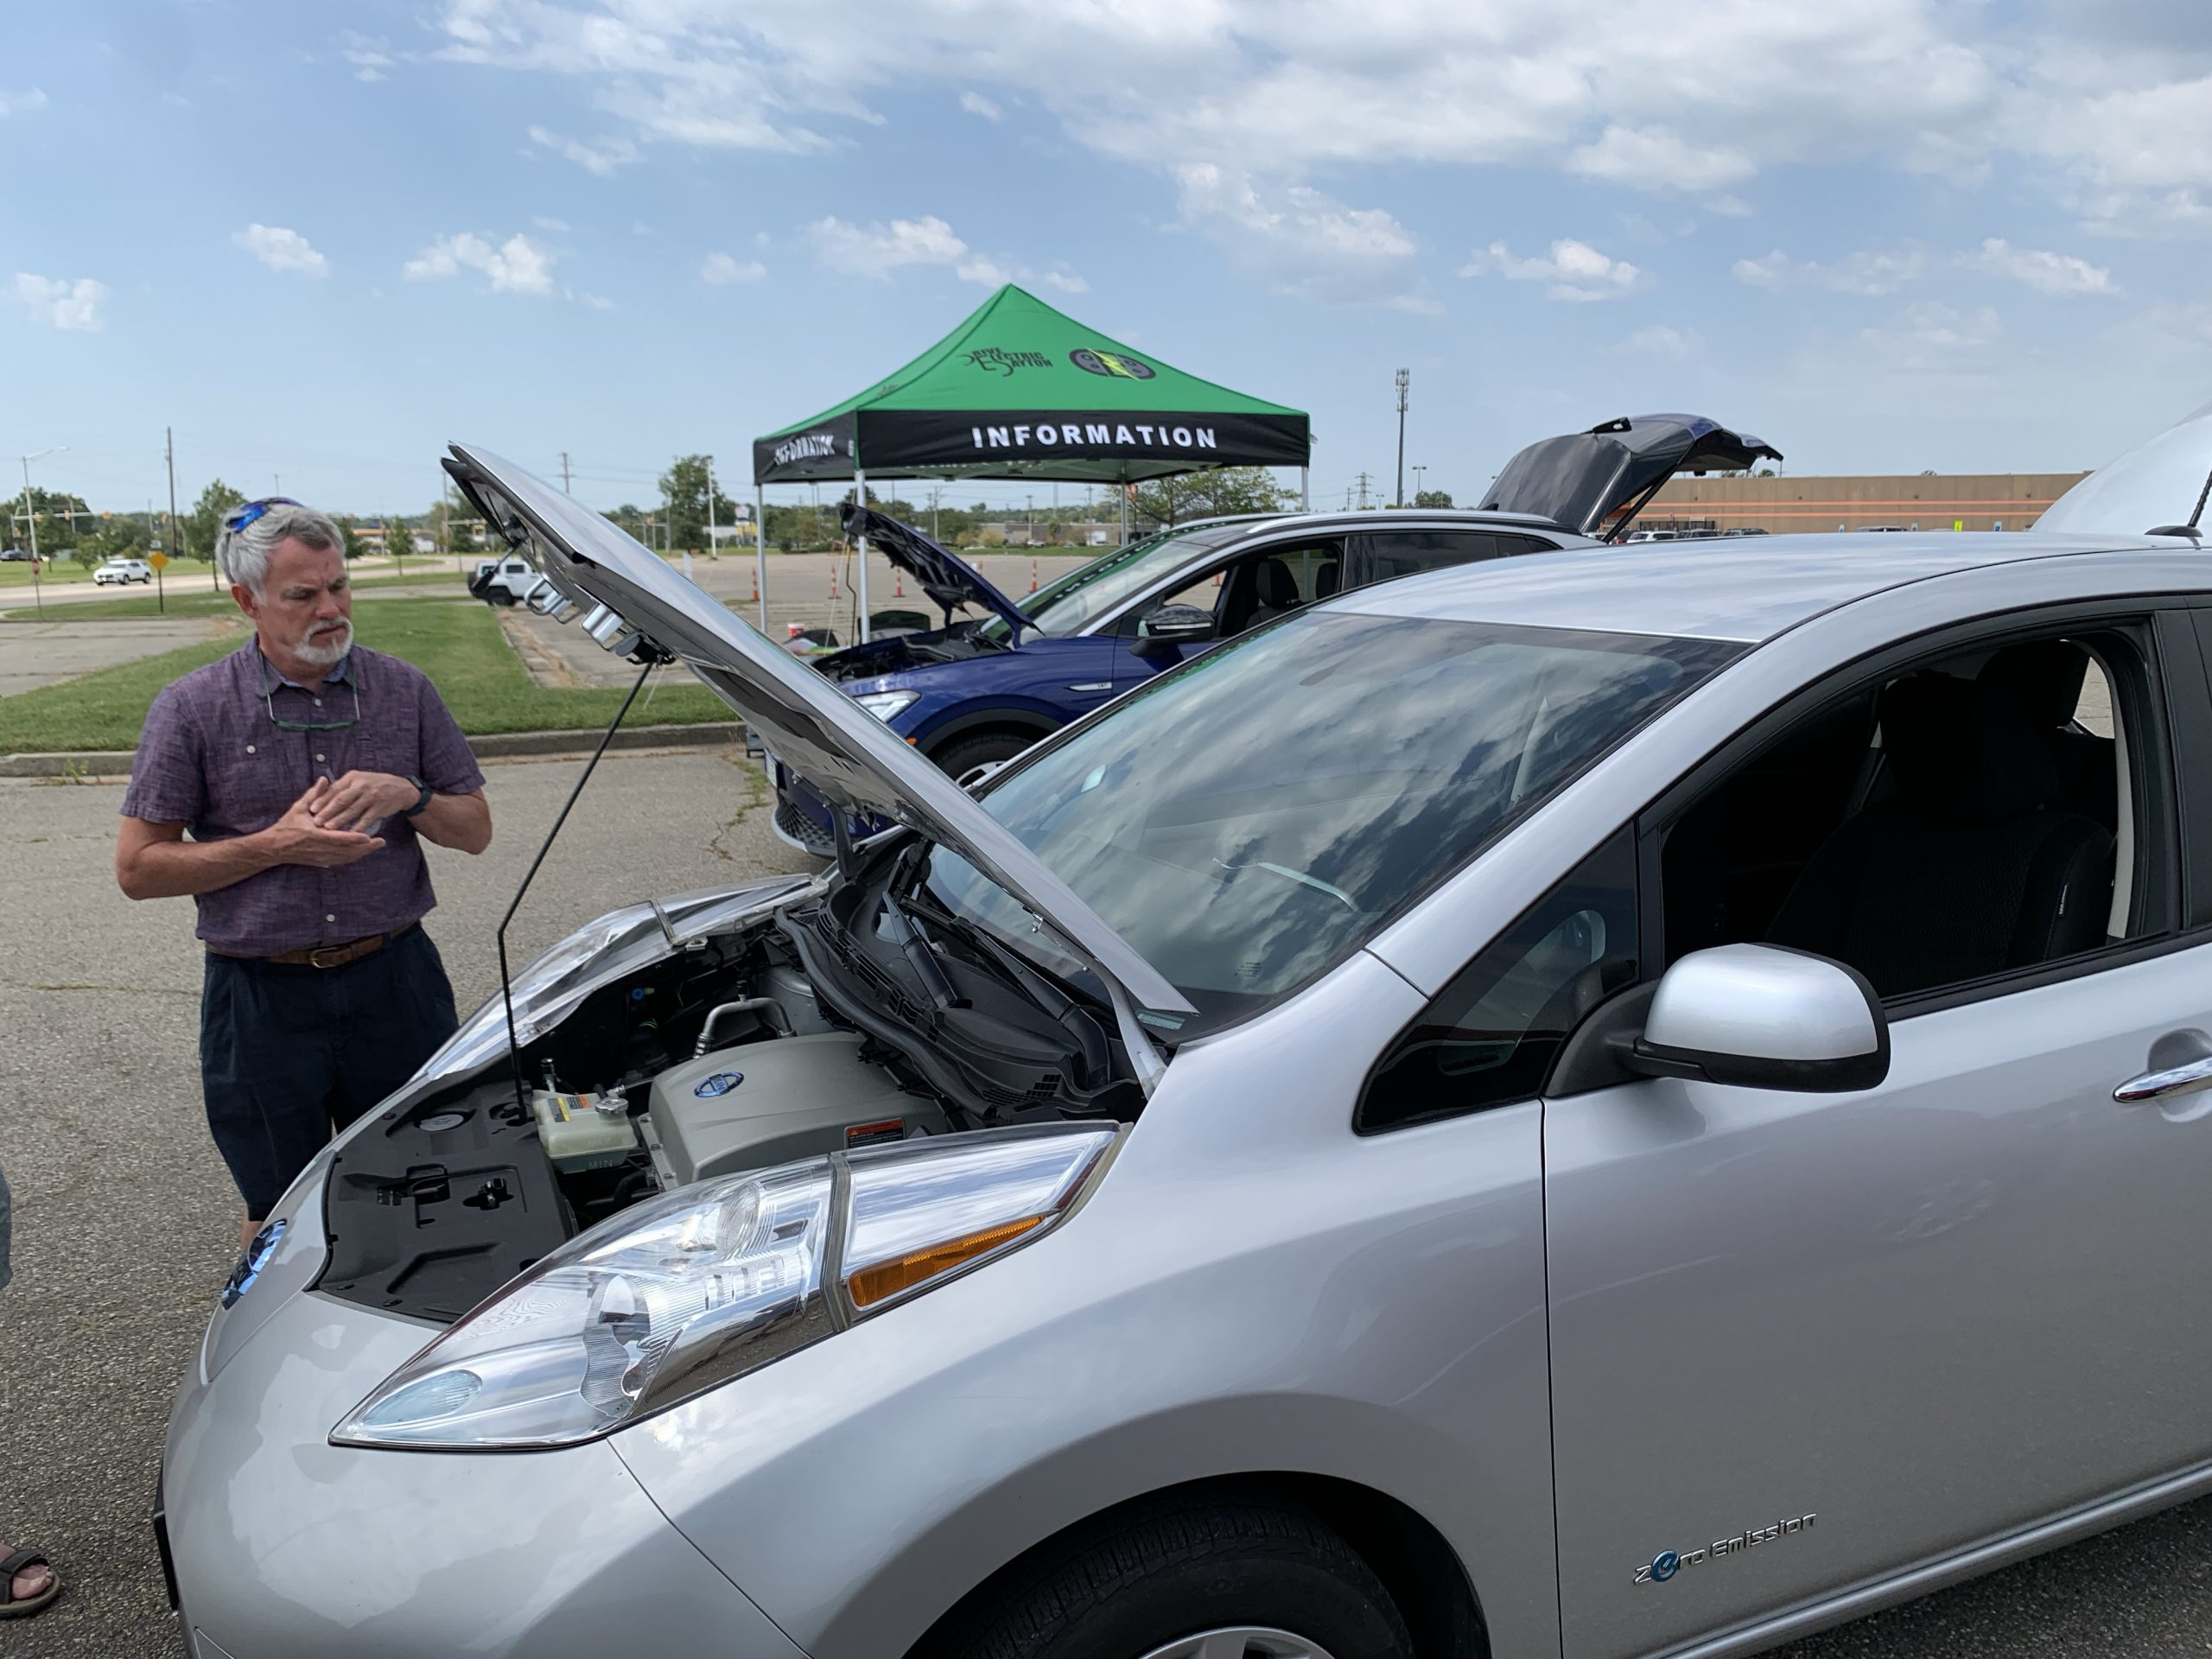 Green Expo and Car Show on Saturday, Sept. 11 – Did We See You There?